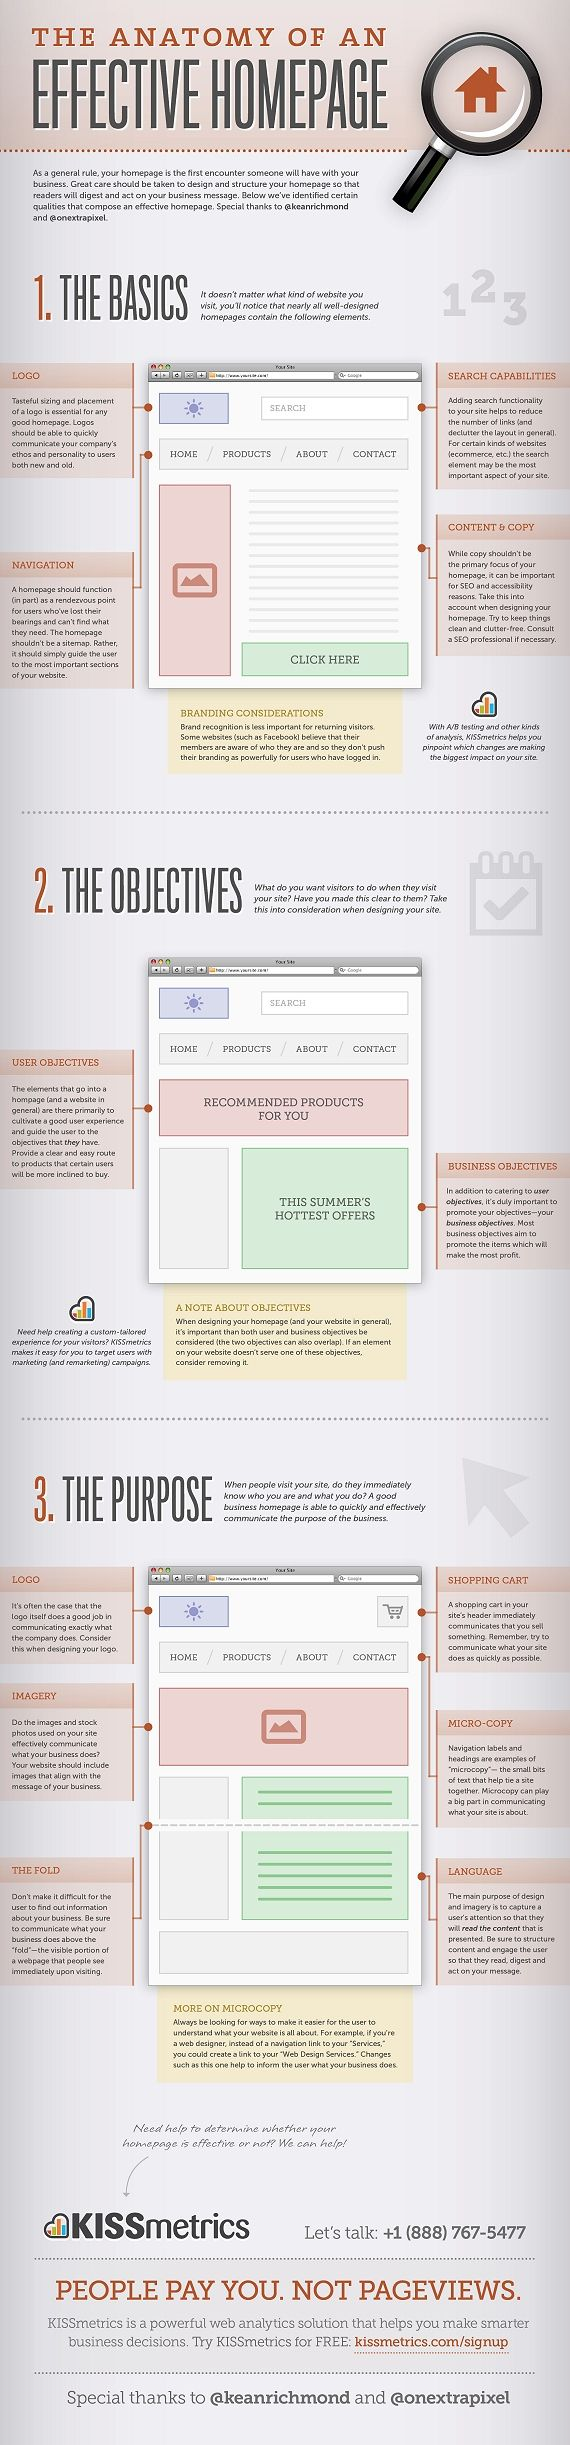 The anatomy of an effective homepage [infographic]